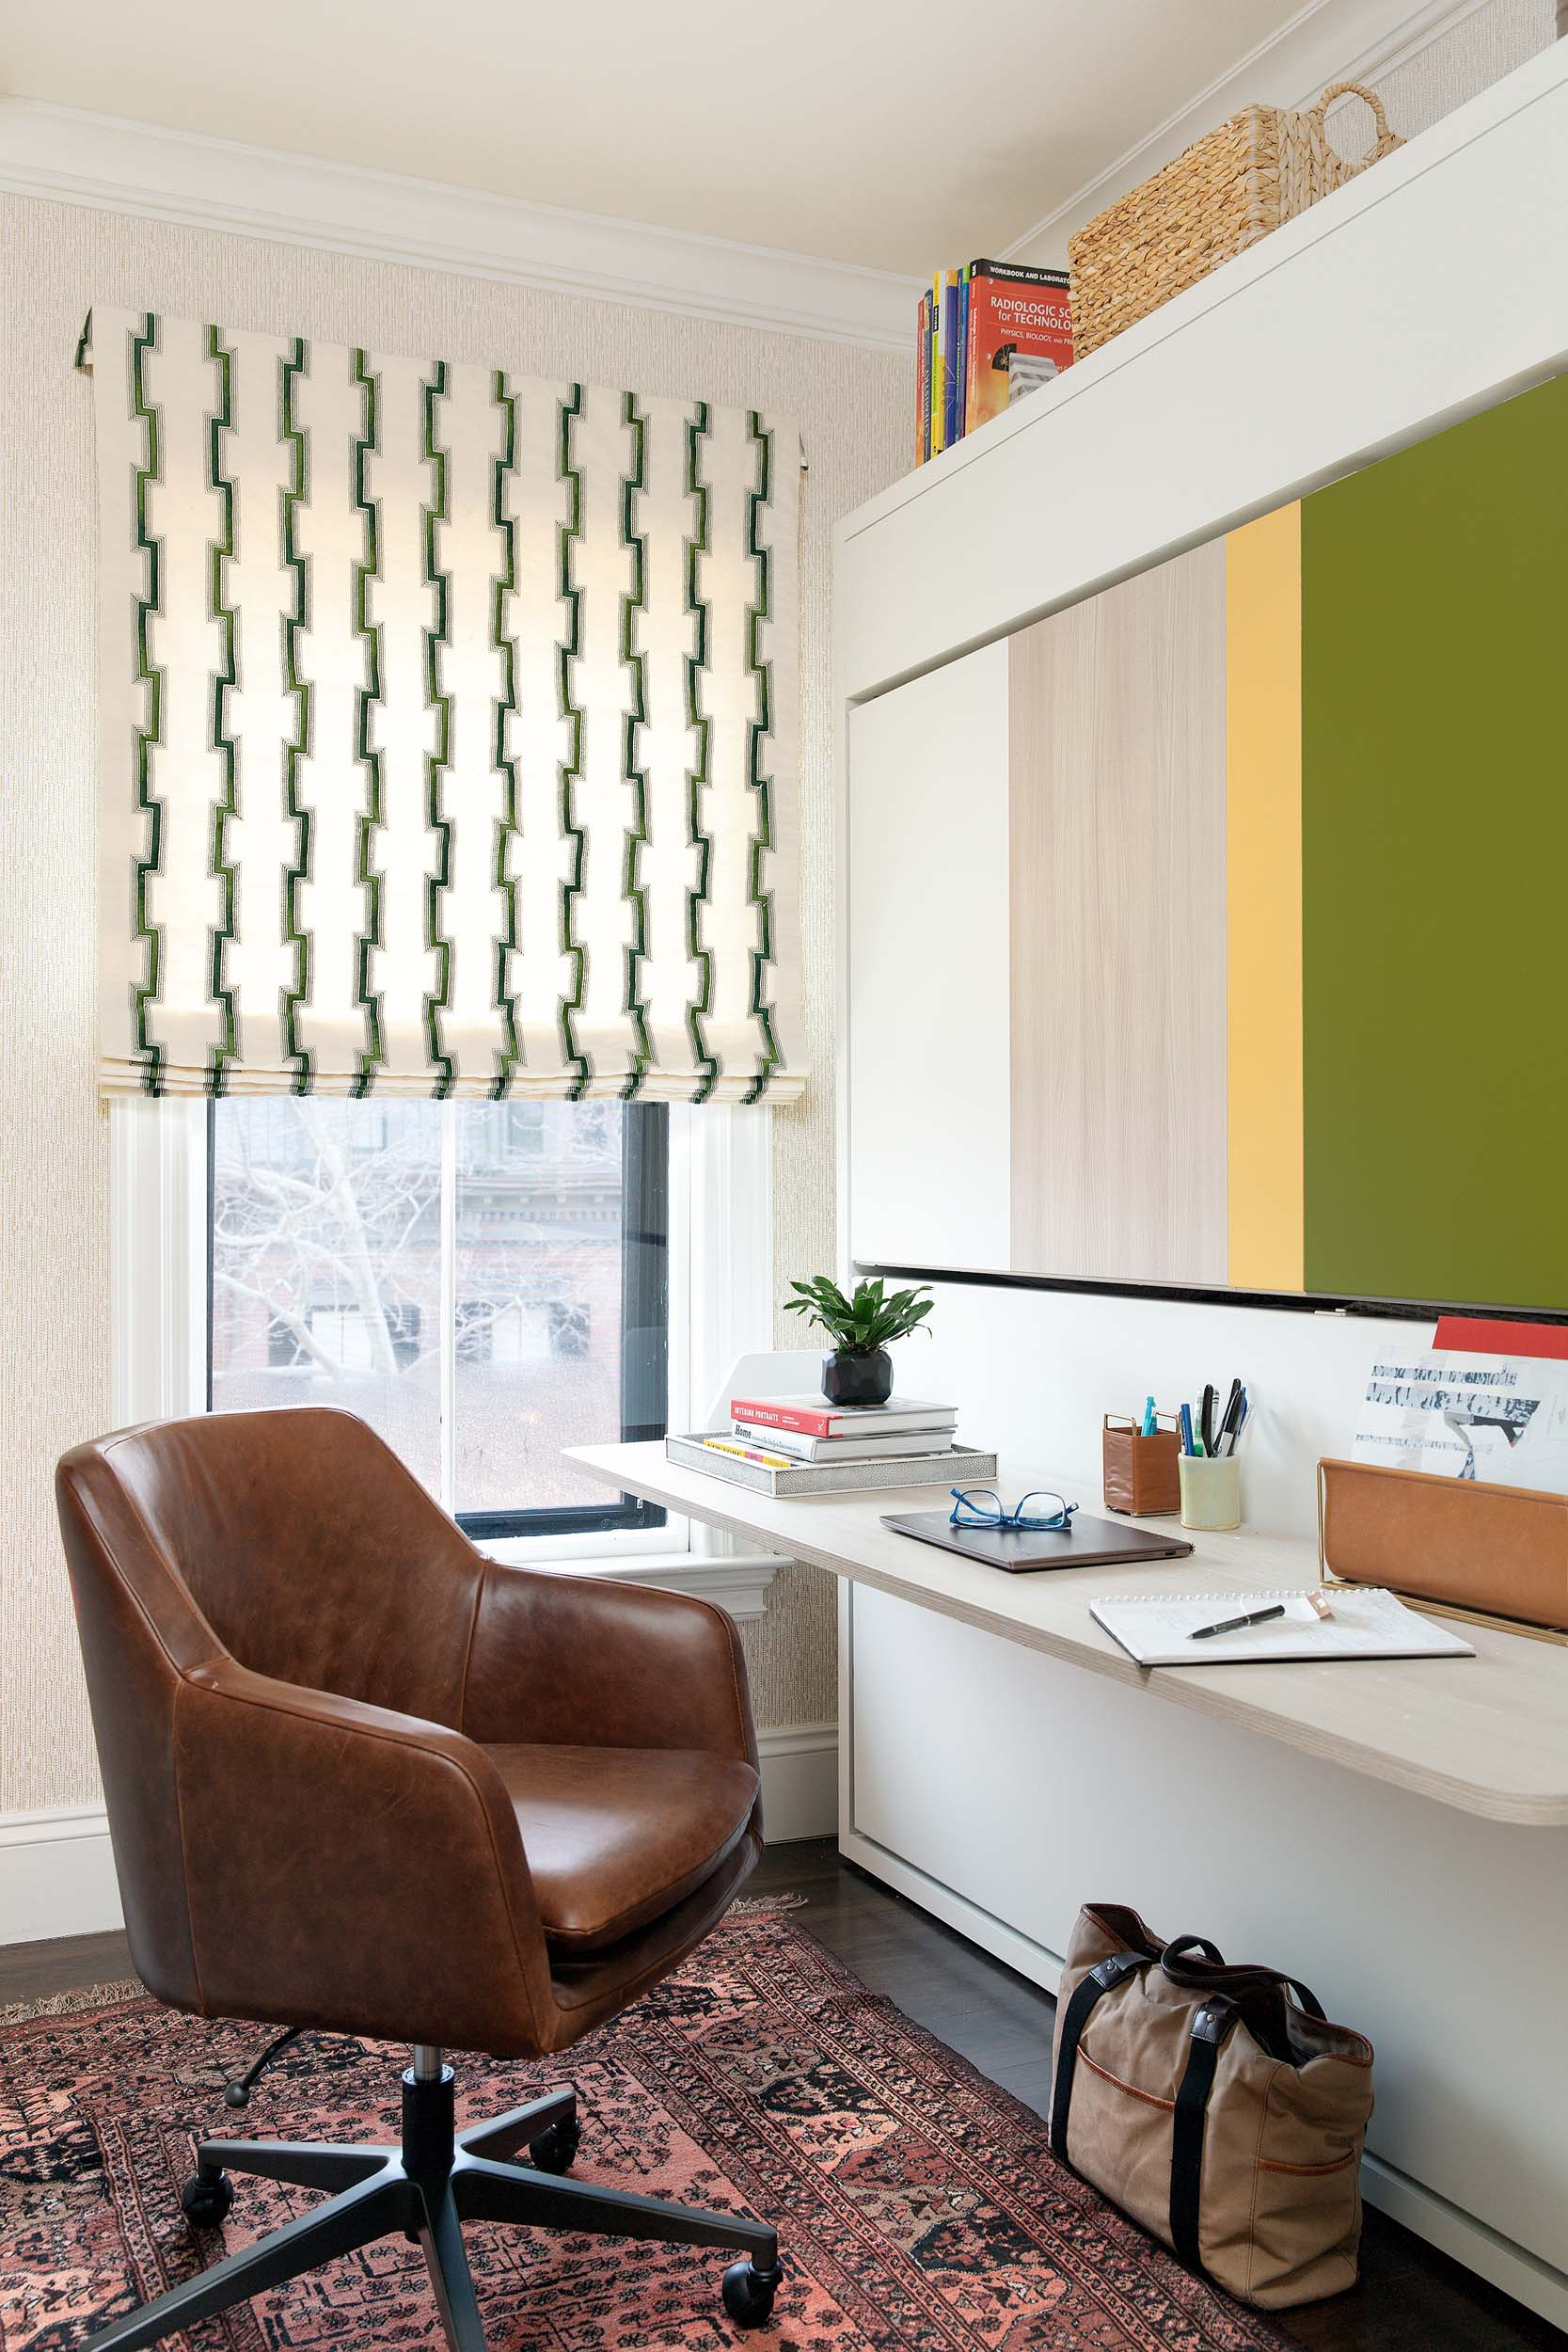 Boston home office interior design by Dane Austin Design